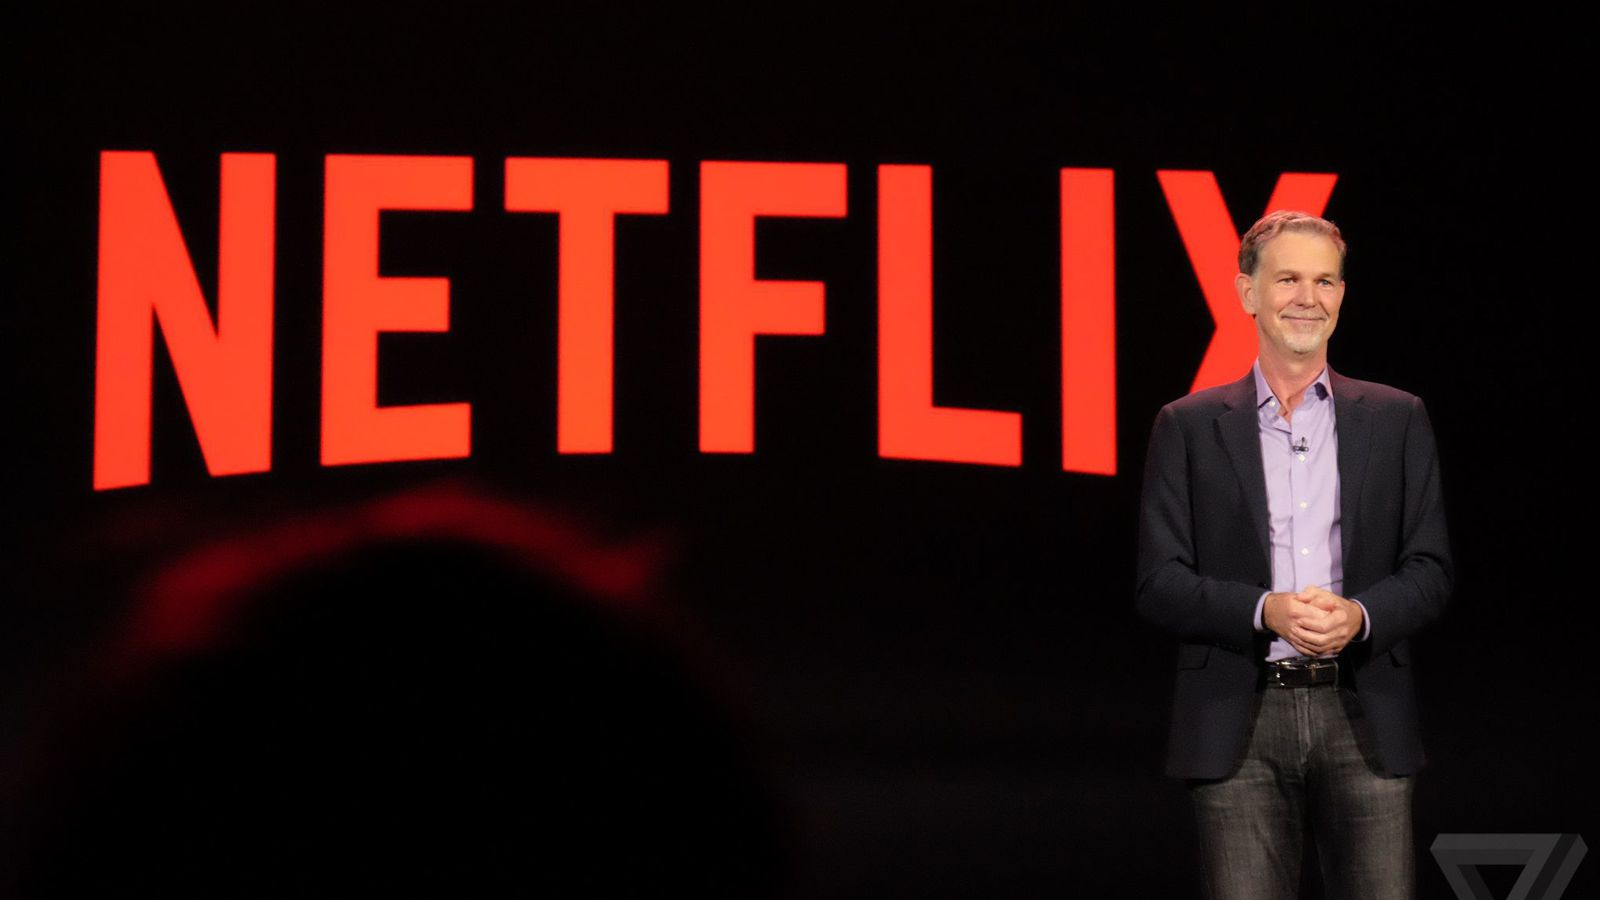 Netflix Whizzes Past 75 Million Subscribers Thanks To Record International  Growth  The Verge